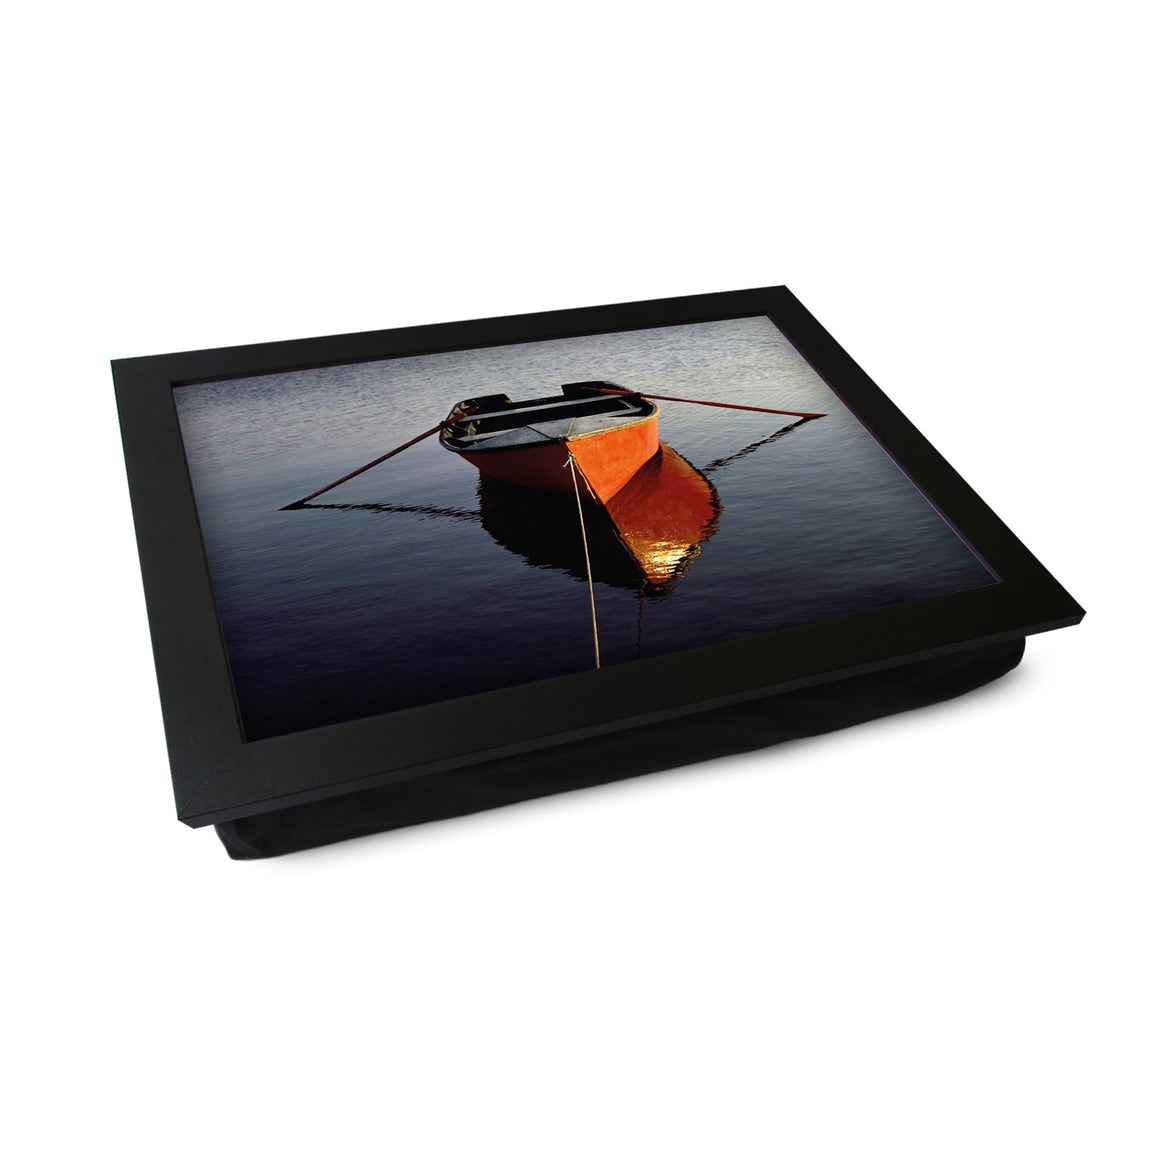 Rowing Boat Lap Tray - L0398